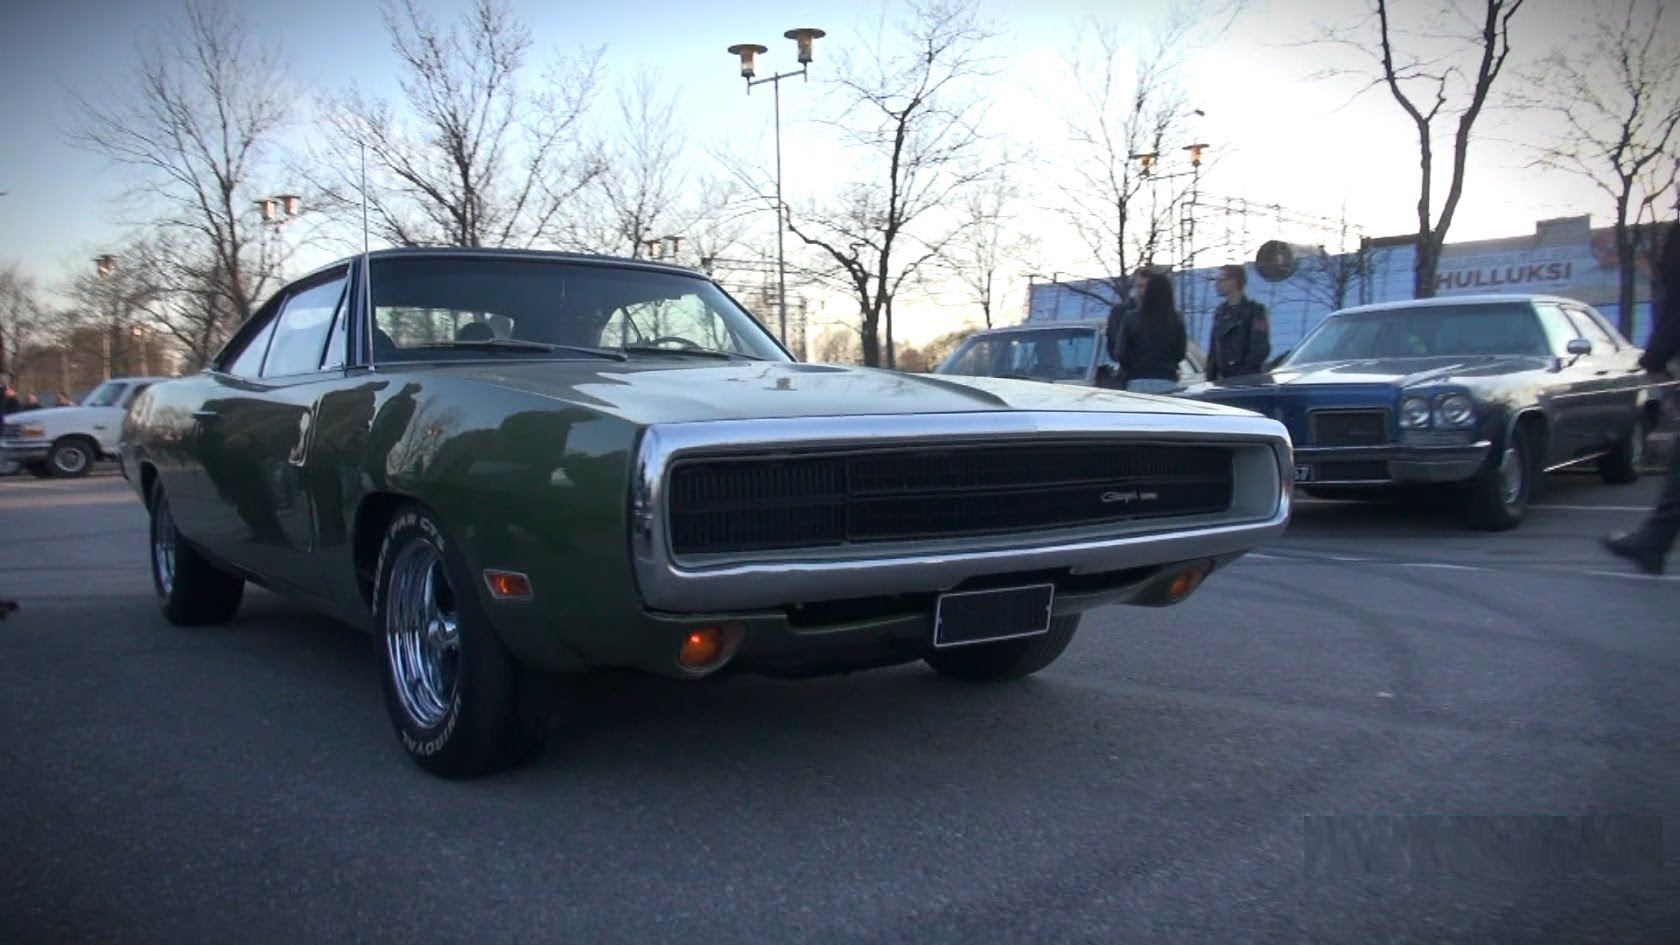 TURN UP THE SPEAKERS And Listen To The Amazing Sound On This 1970 DODGE CHARGER